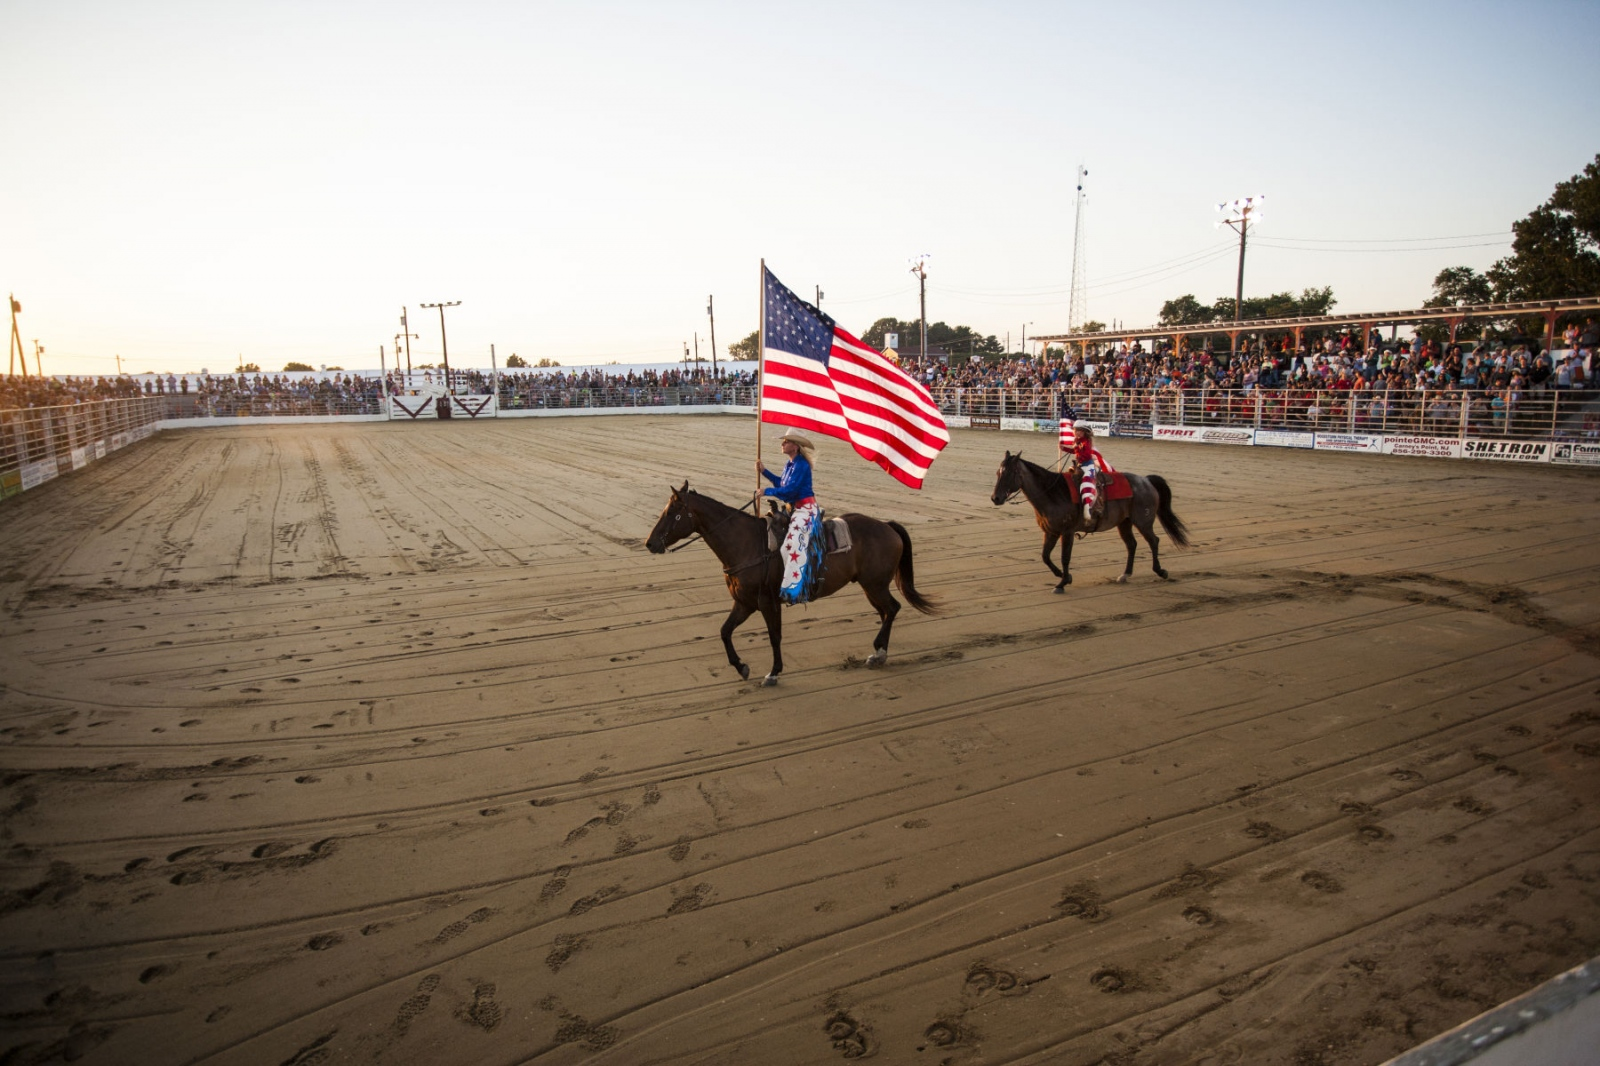 KatieHarris and her nice carrying the American flag at Cowtown Rodeo in Woodstown, NJ. August 15, 2015 (Kevin C. Downs/Cosmos)